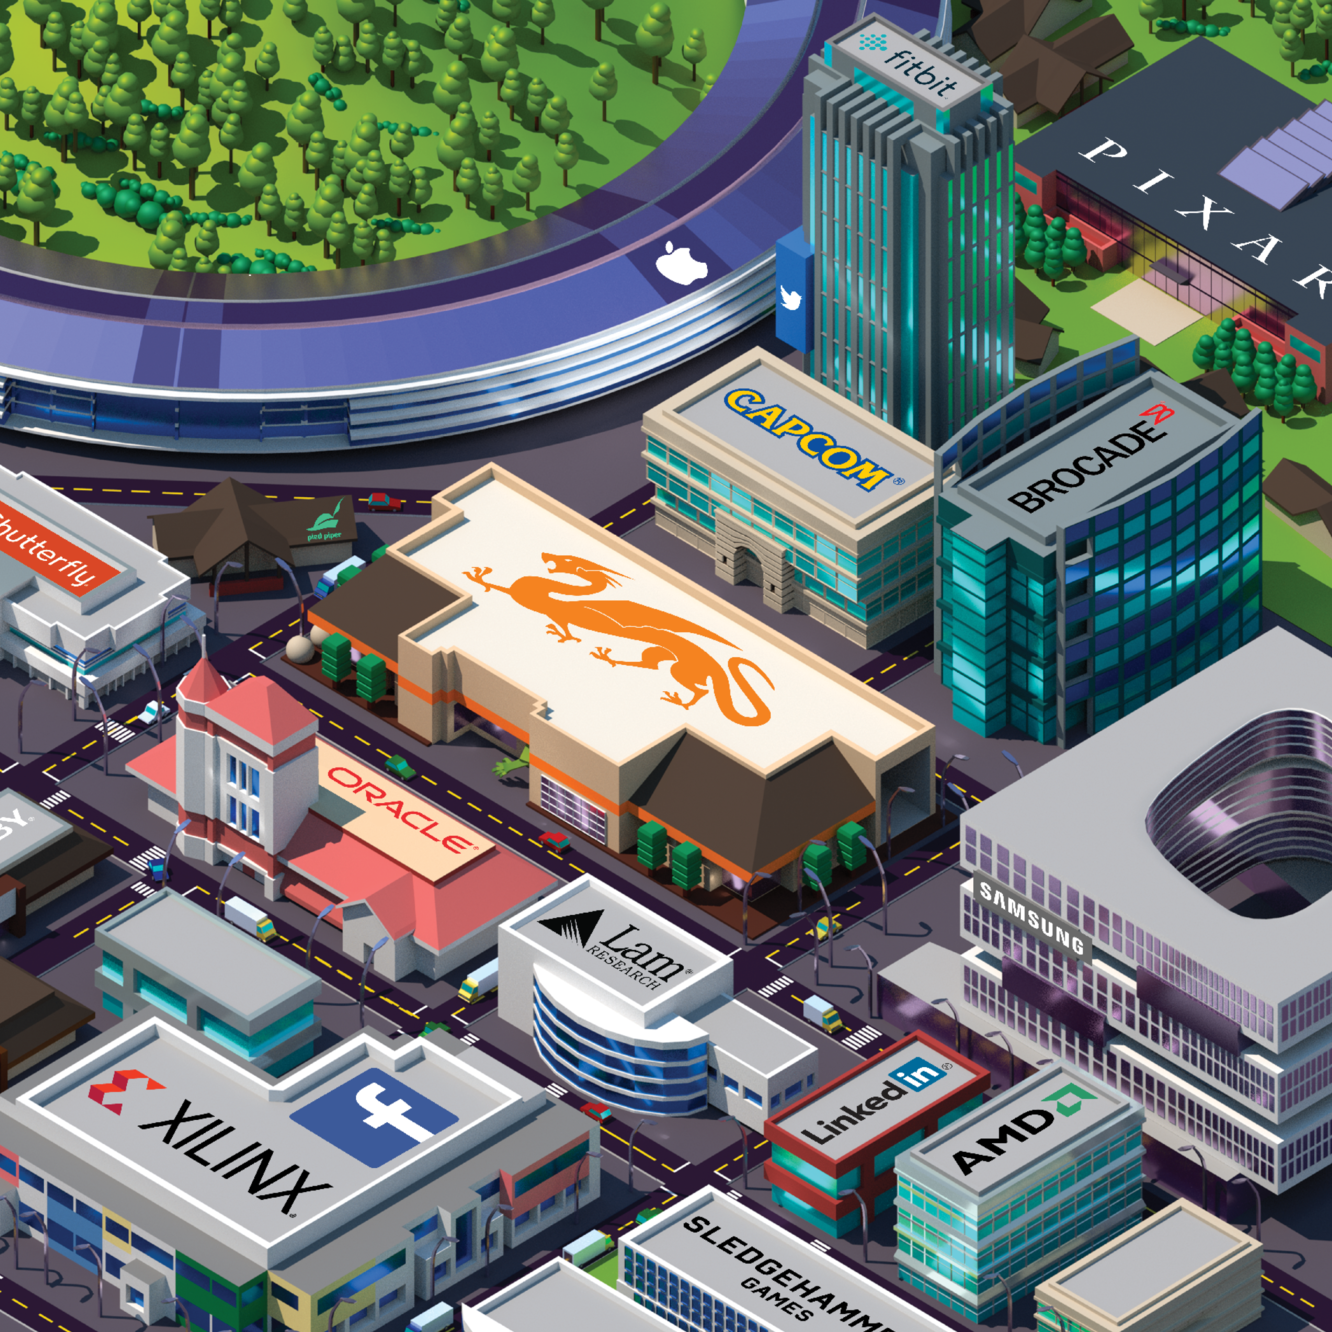 Silicon Valley Graphic